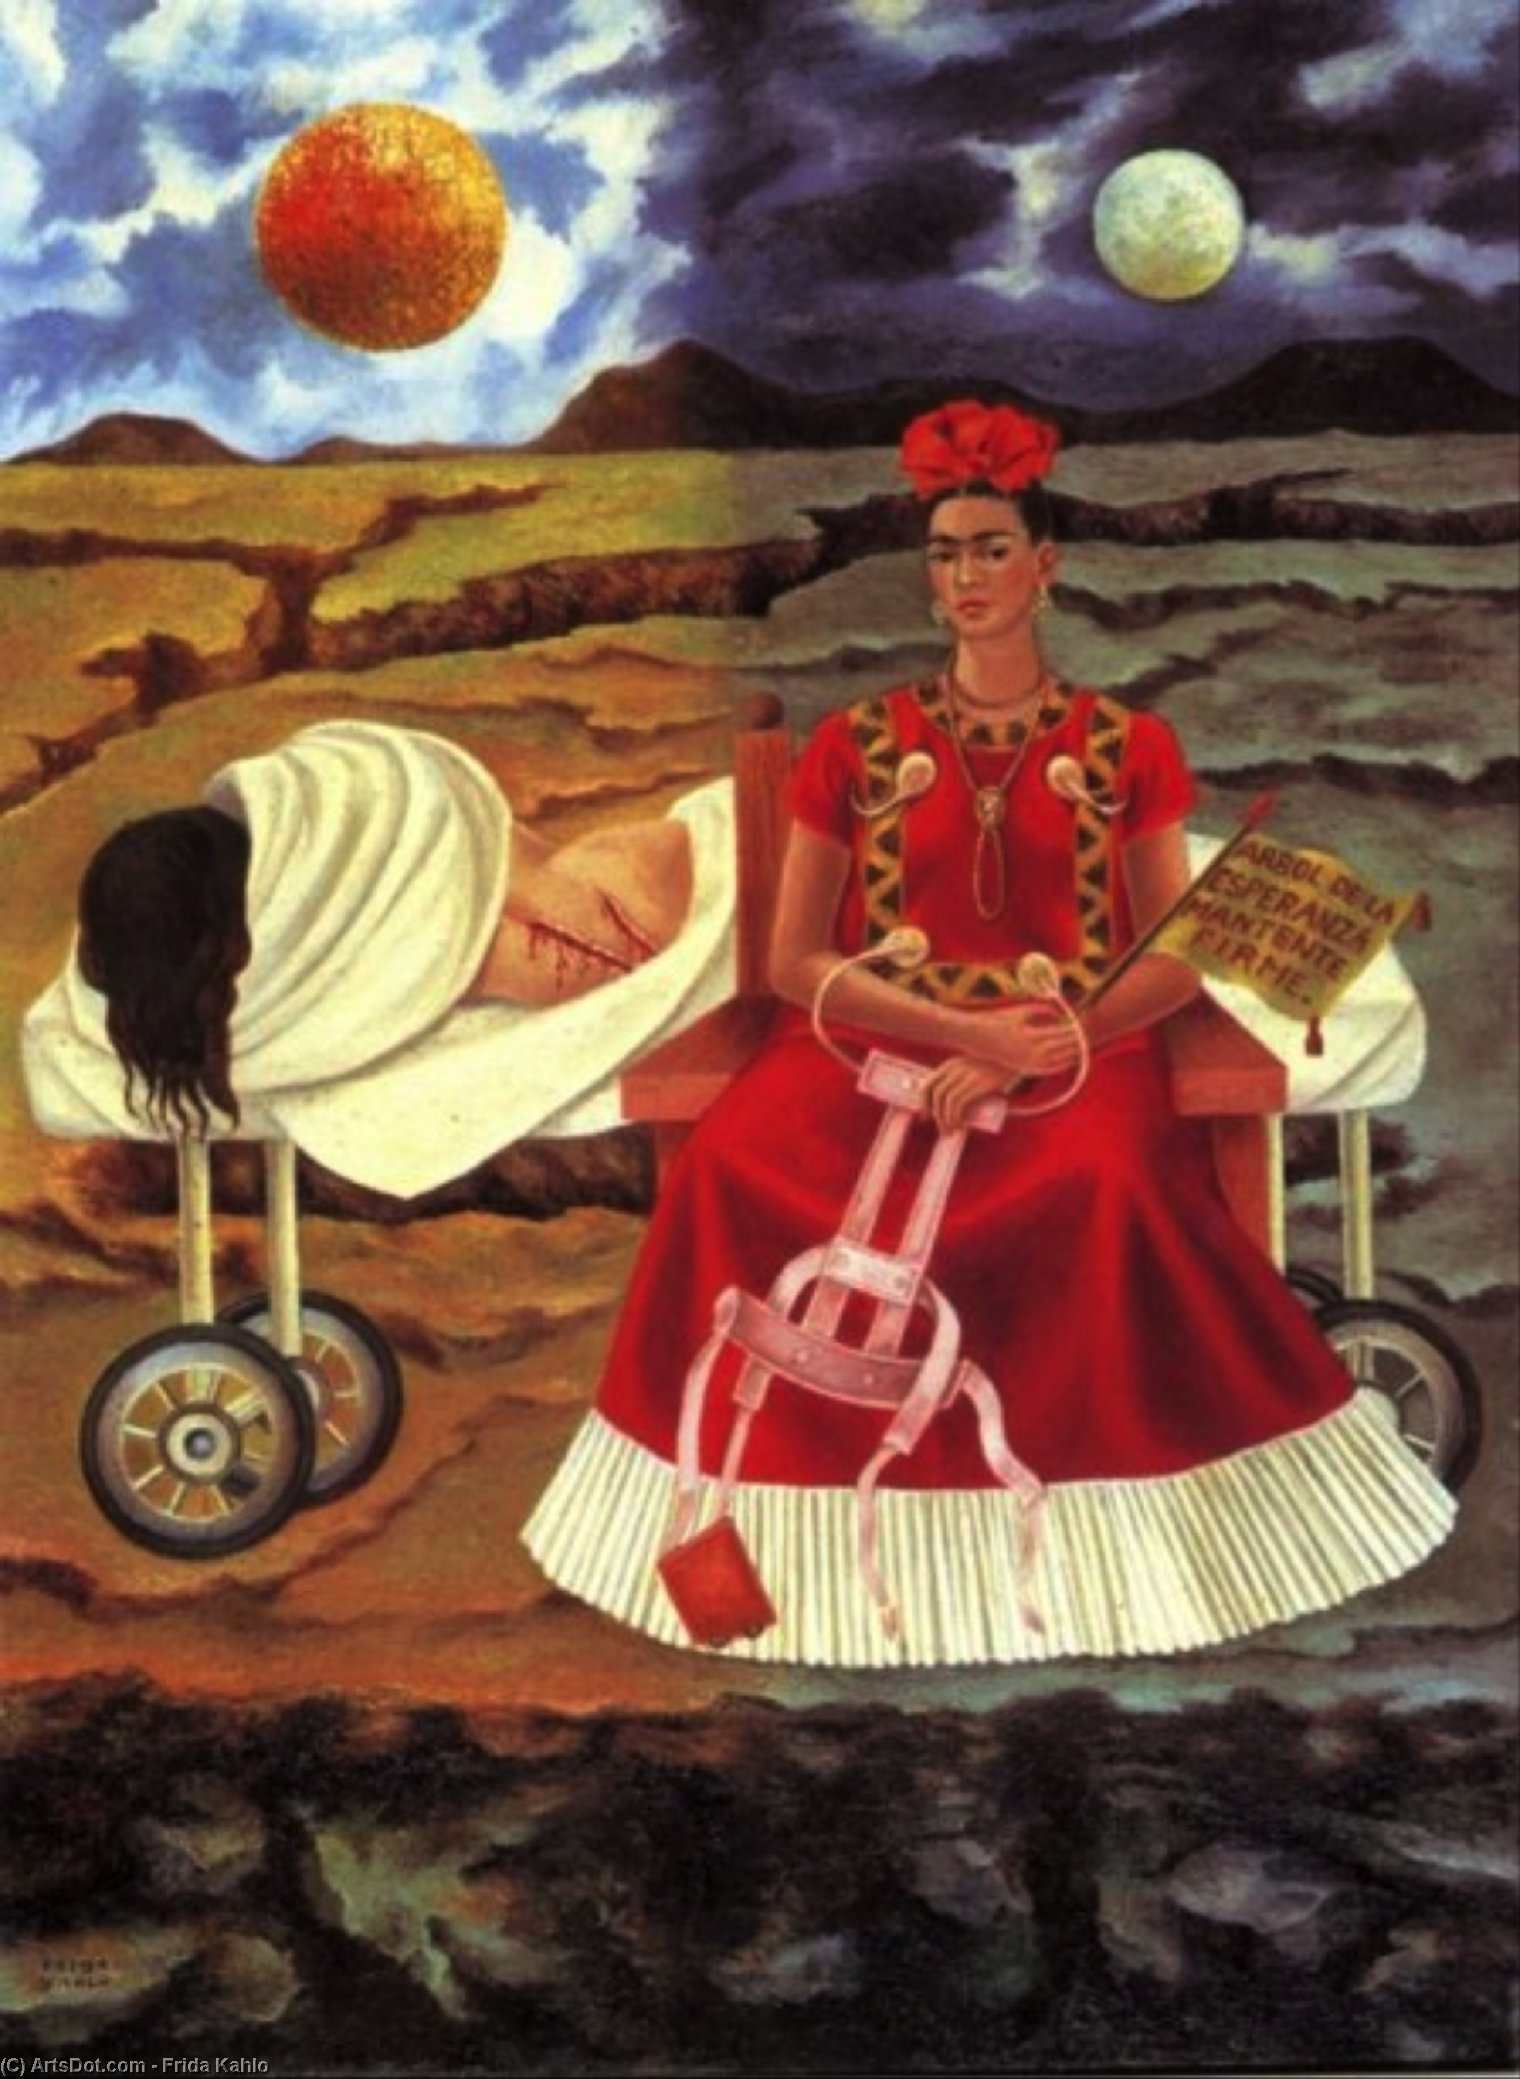 Wikioo.org - The Encyclopedia of Fine Arts - Painting, Artwork by Frida Kahlo - Tree of Hope